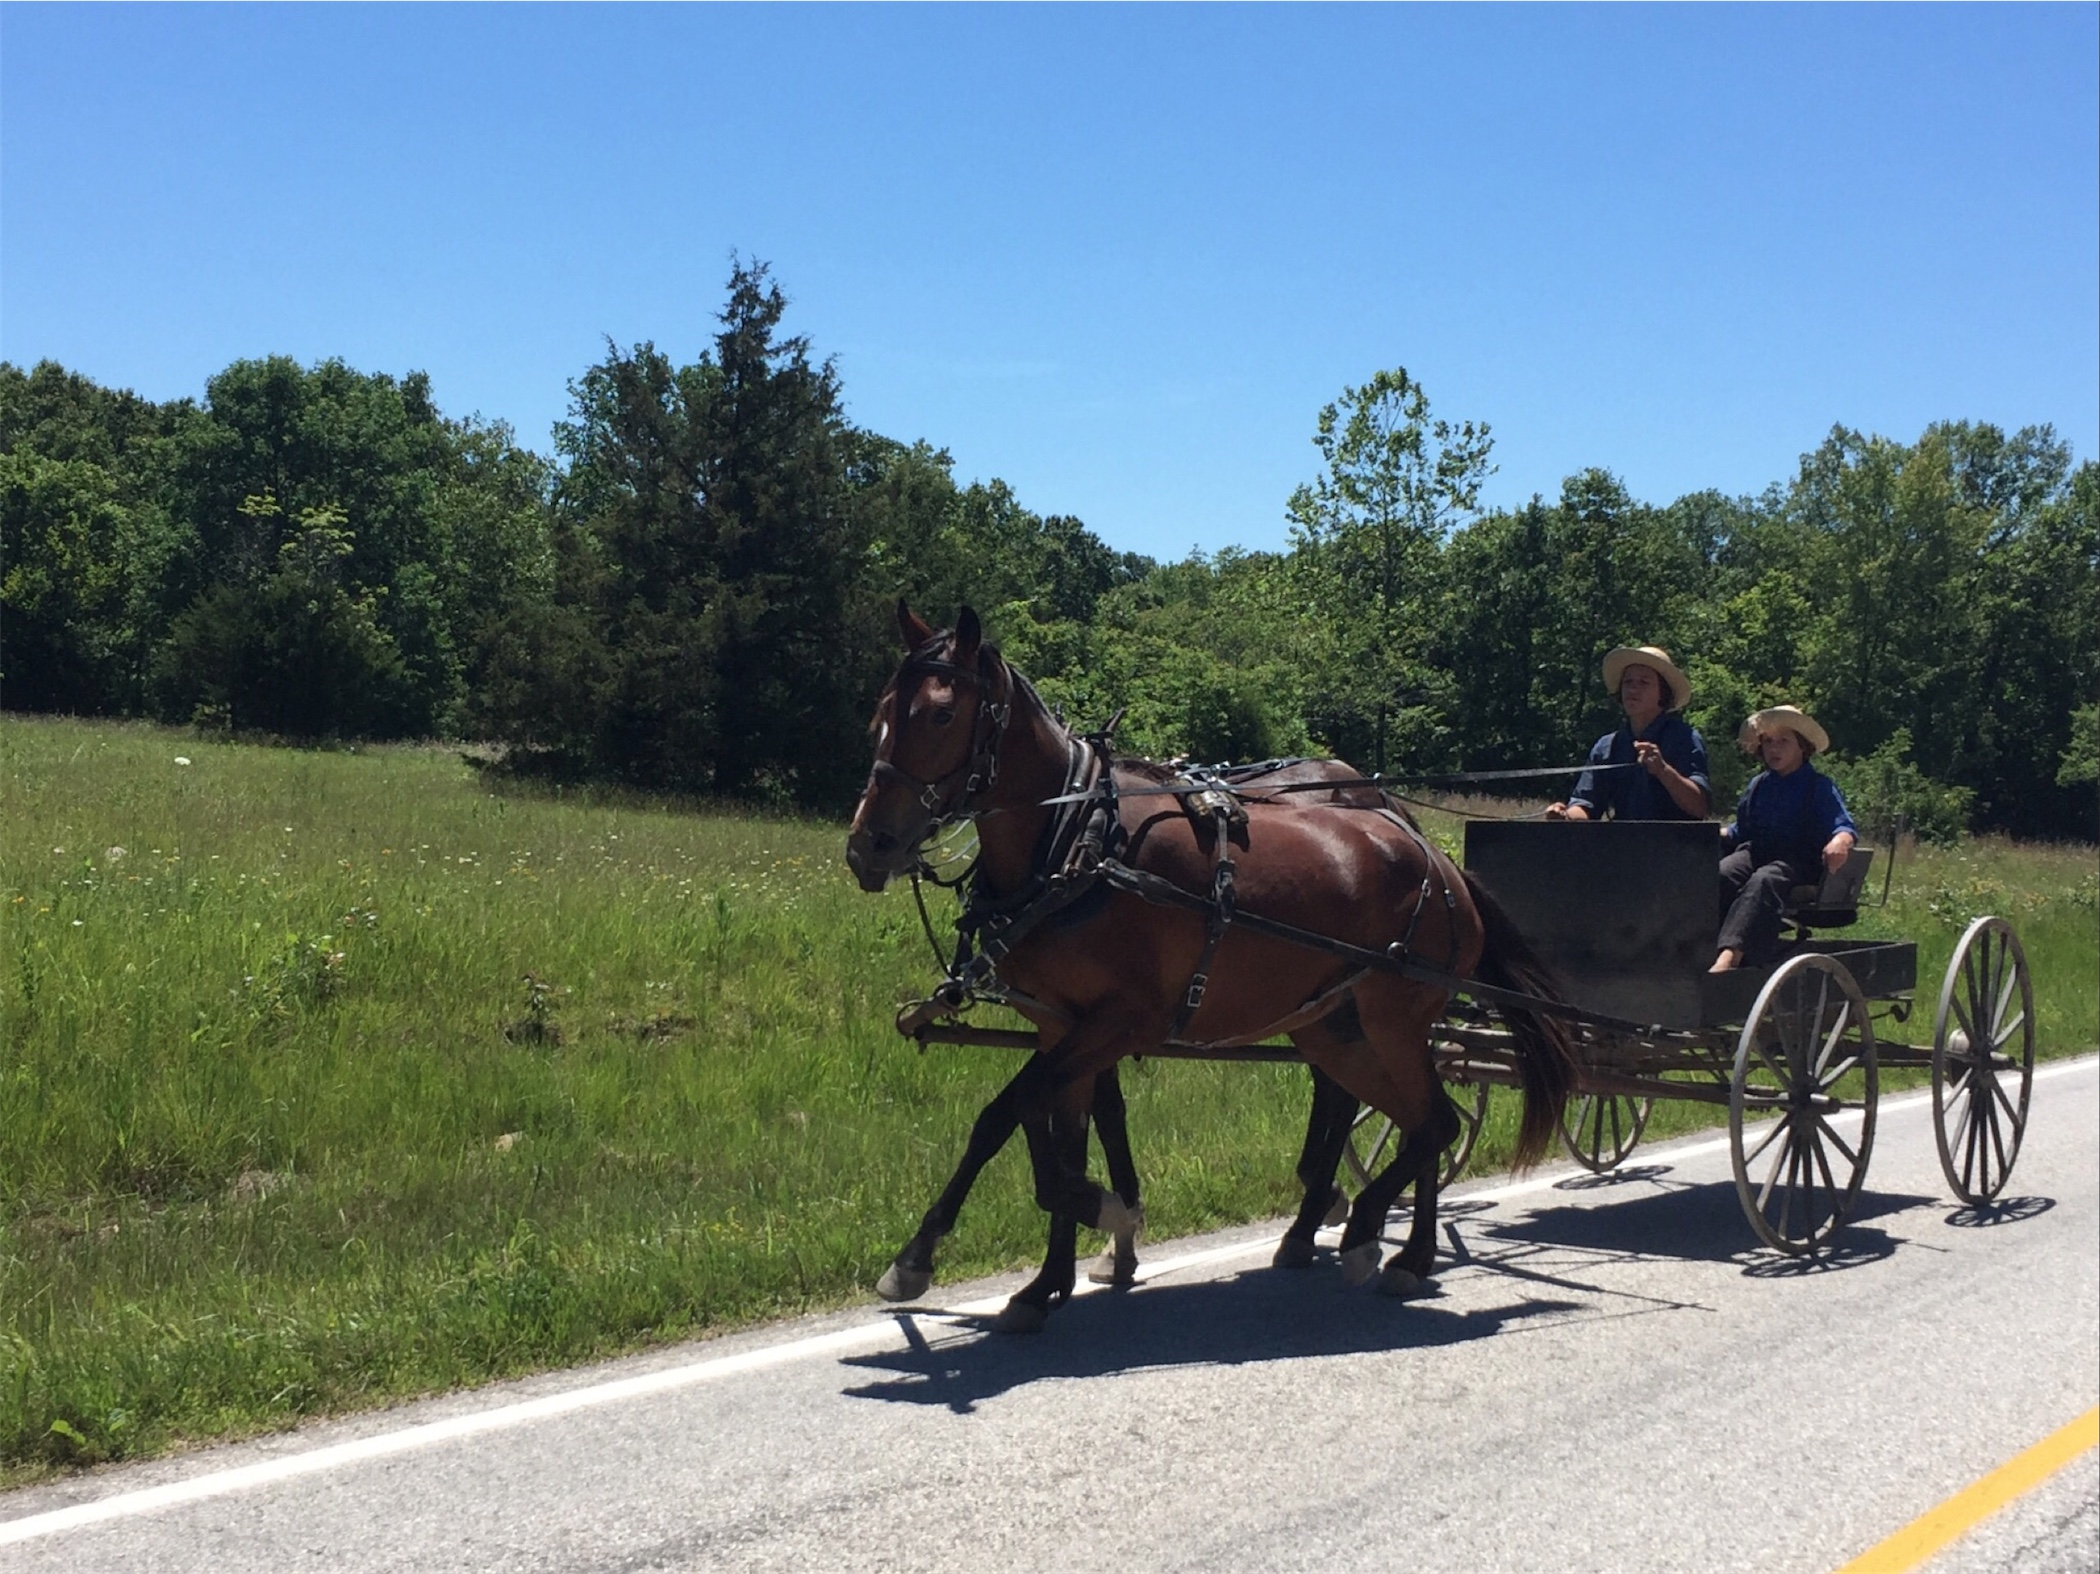 We are still in Amish and Mennonite Country. This buggy passed us heading East.